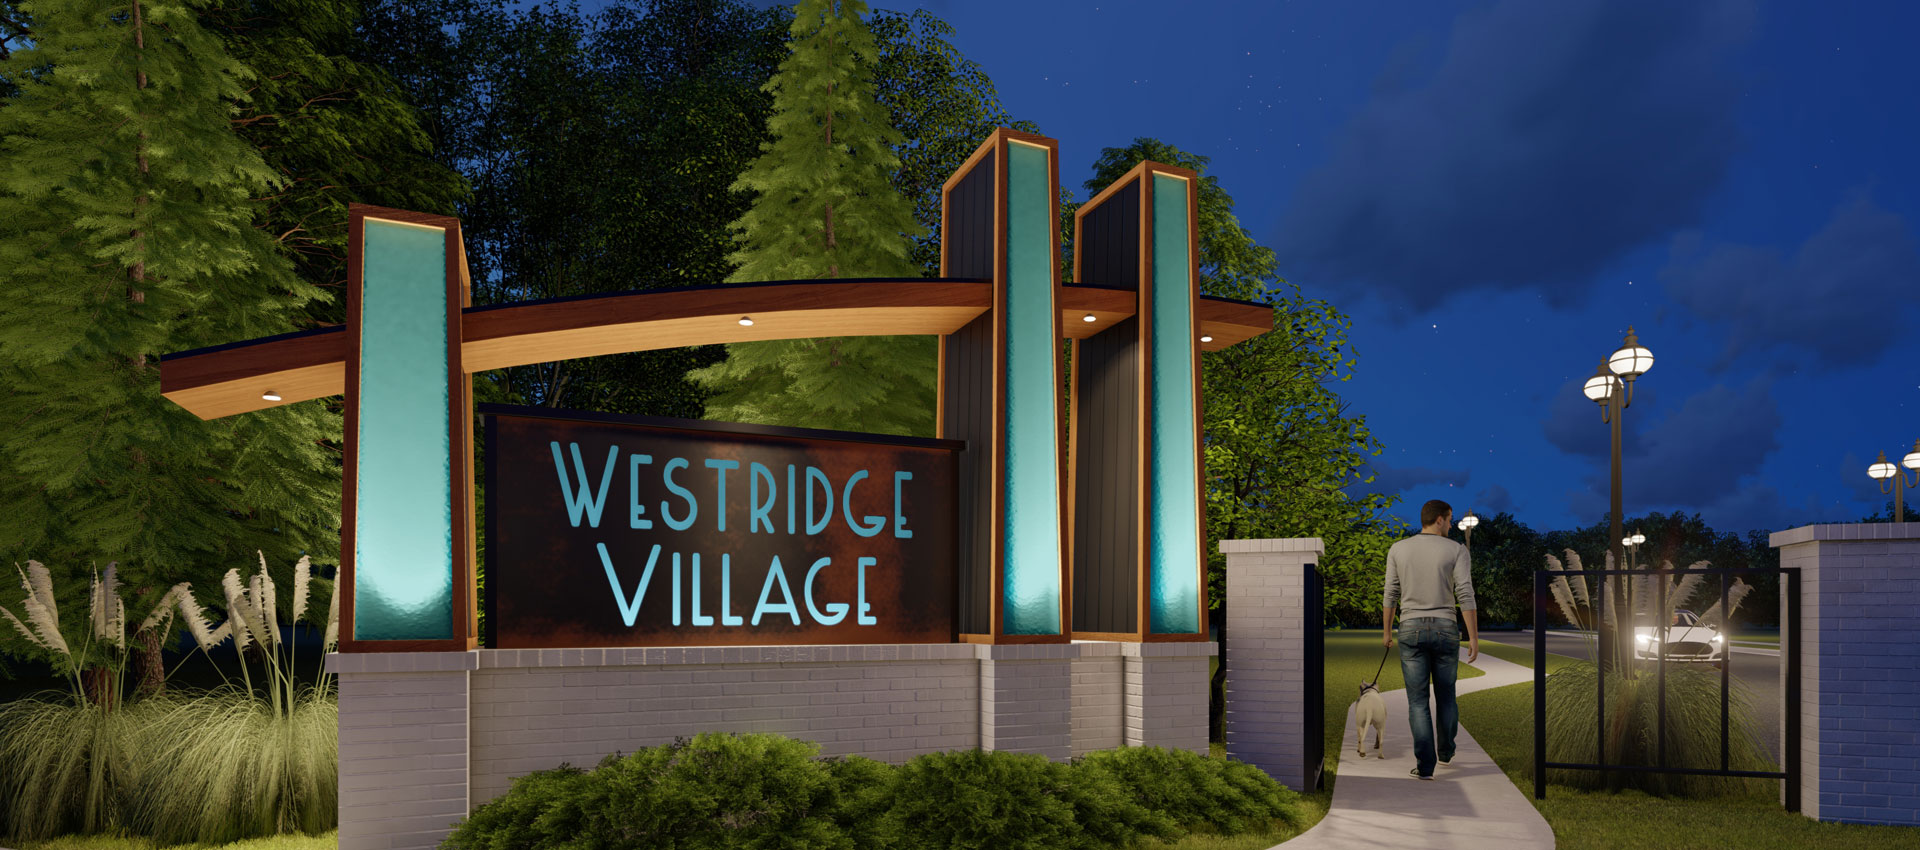 Westridge Village in Centerton, Arkansas